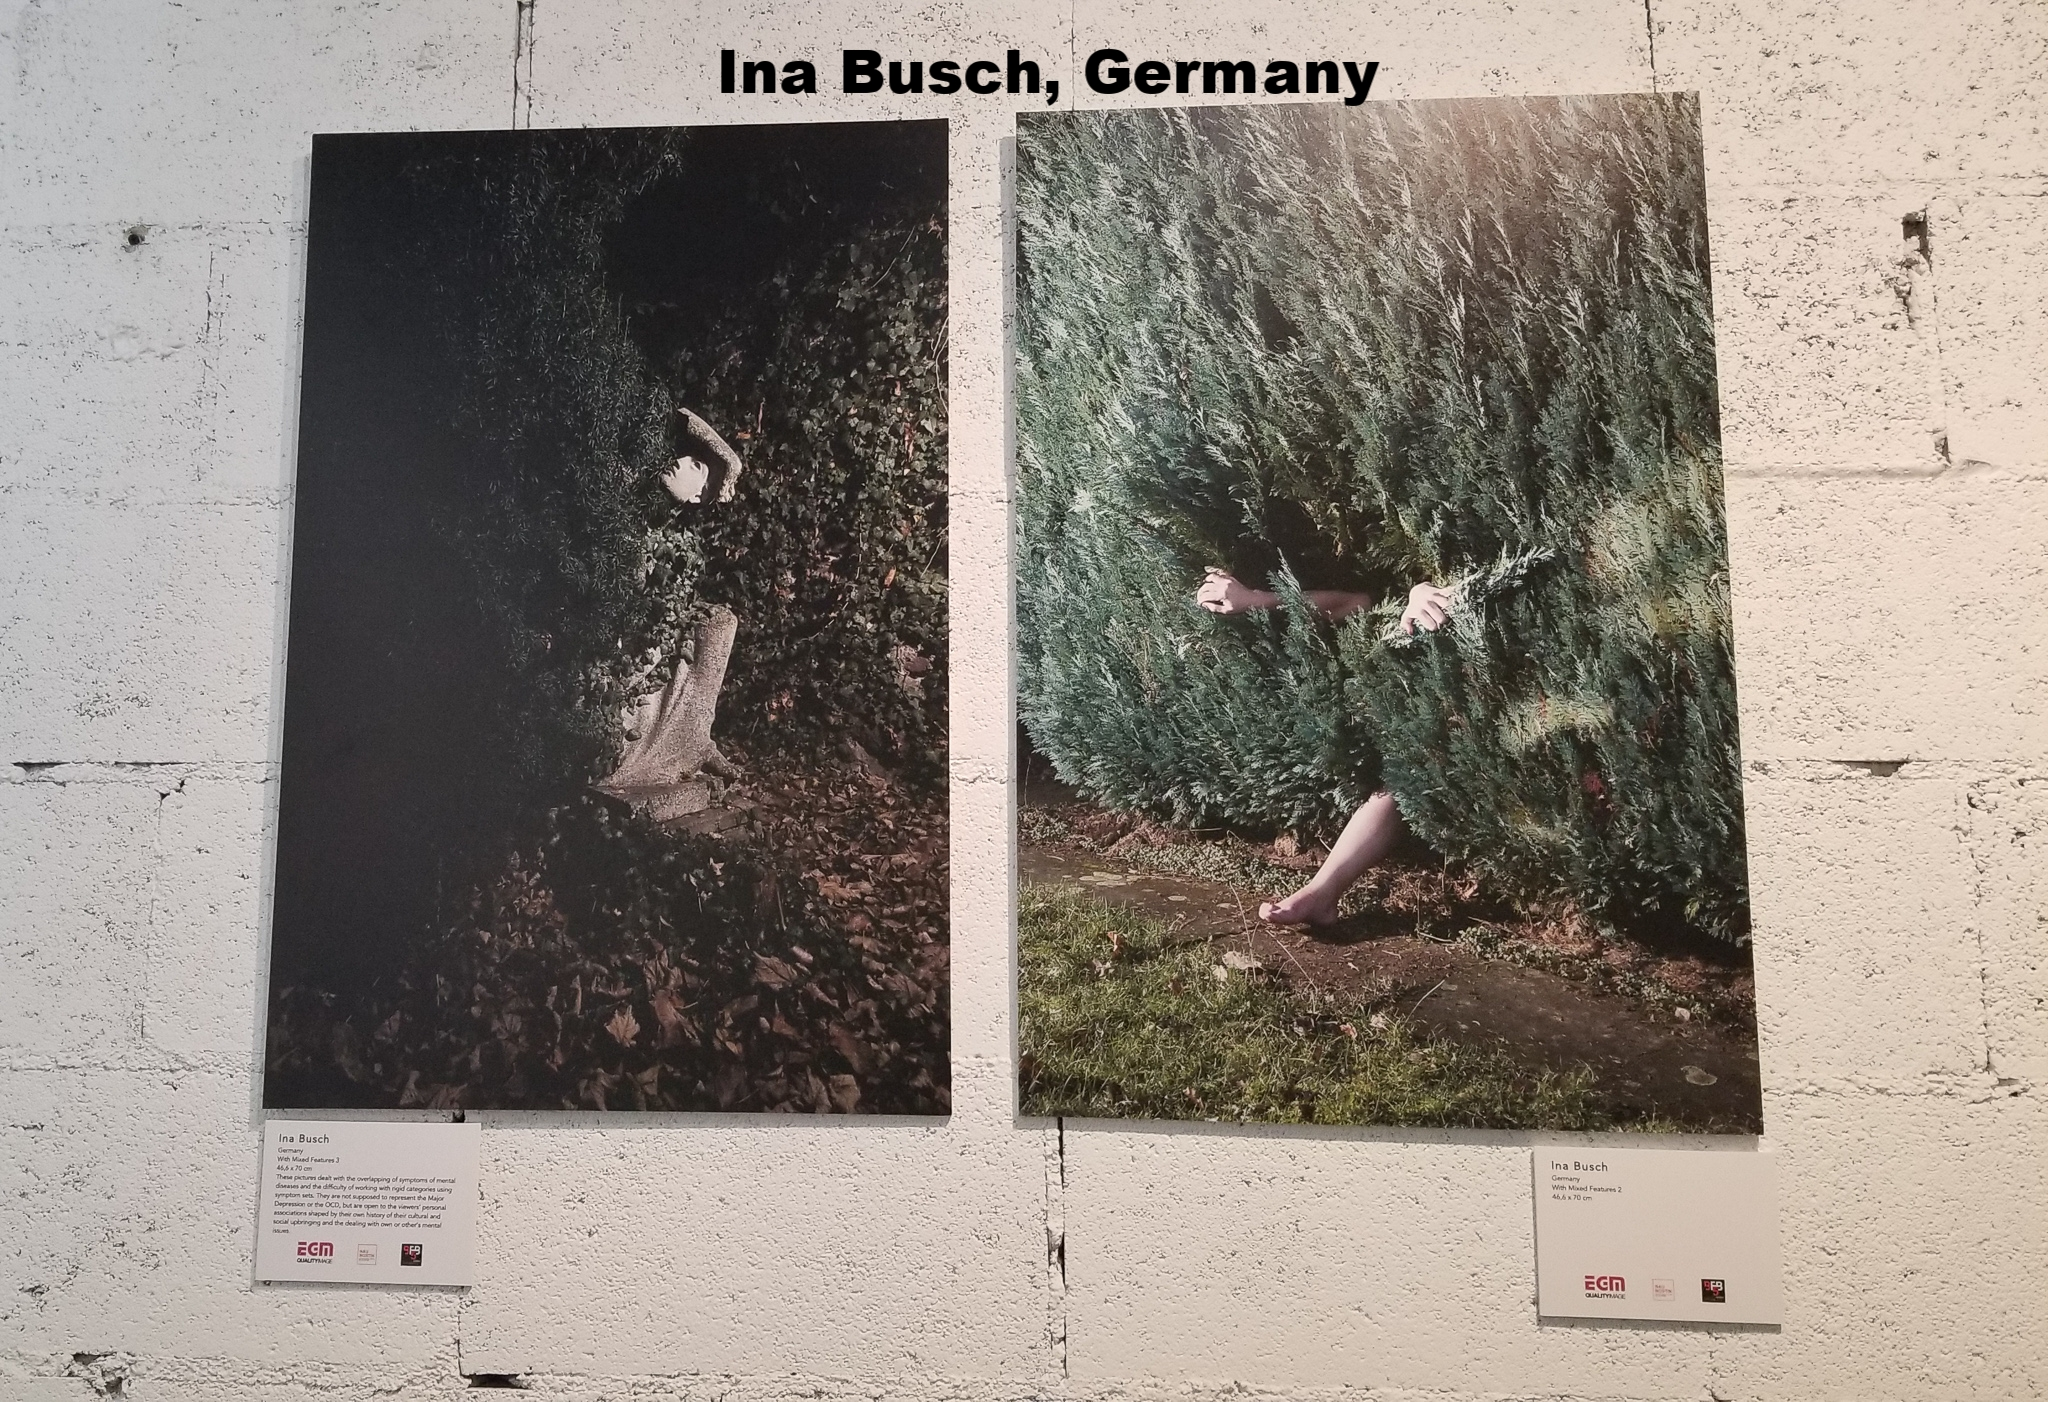 Ina Busch, Germany